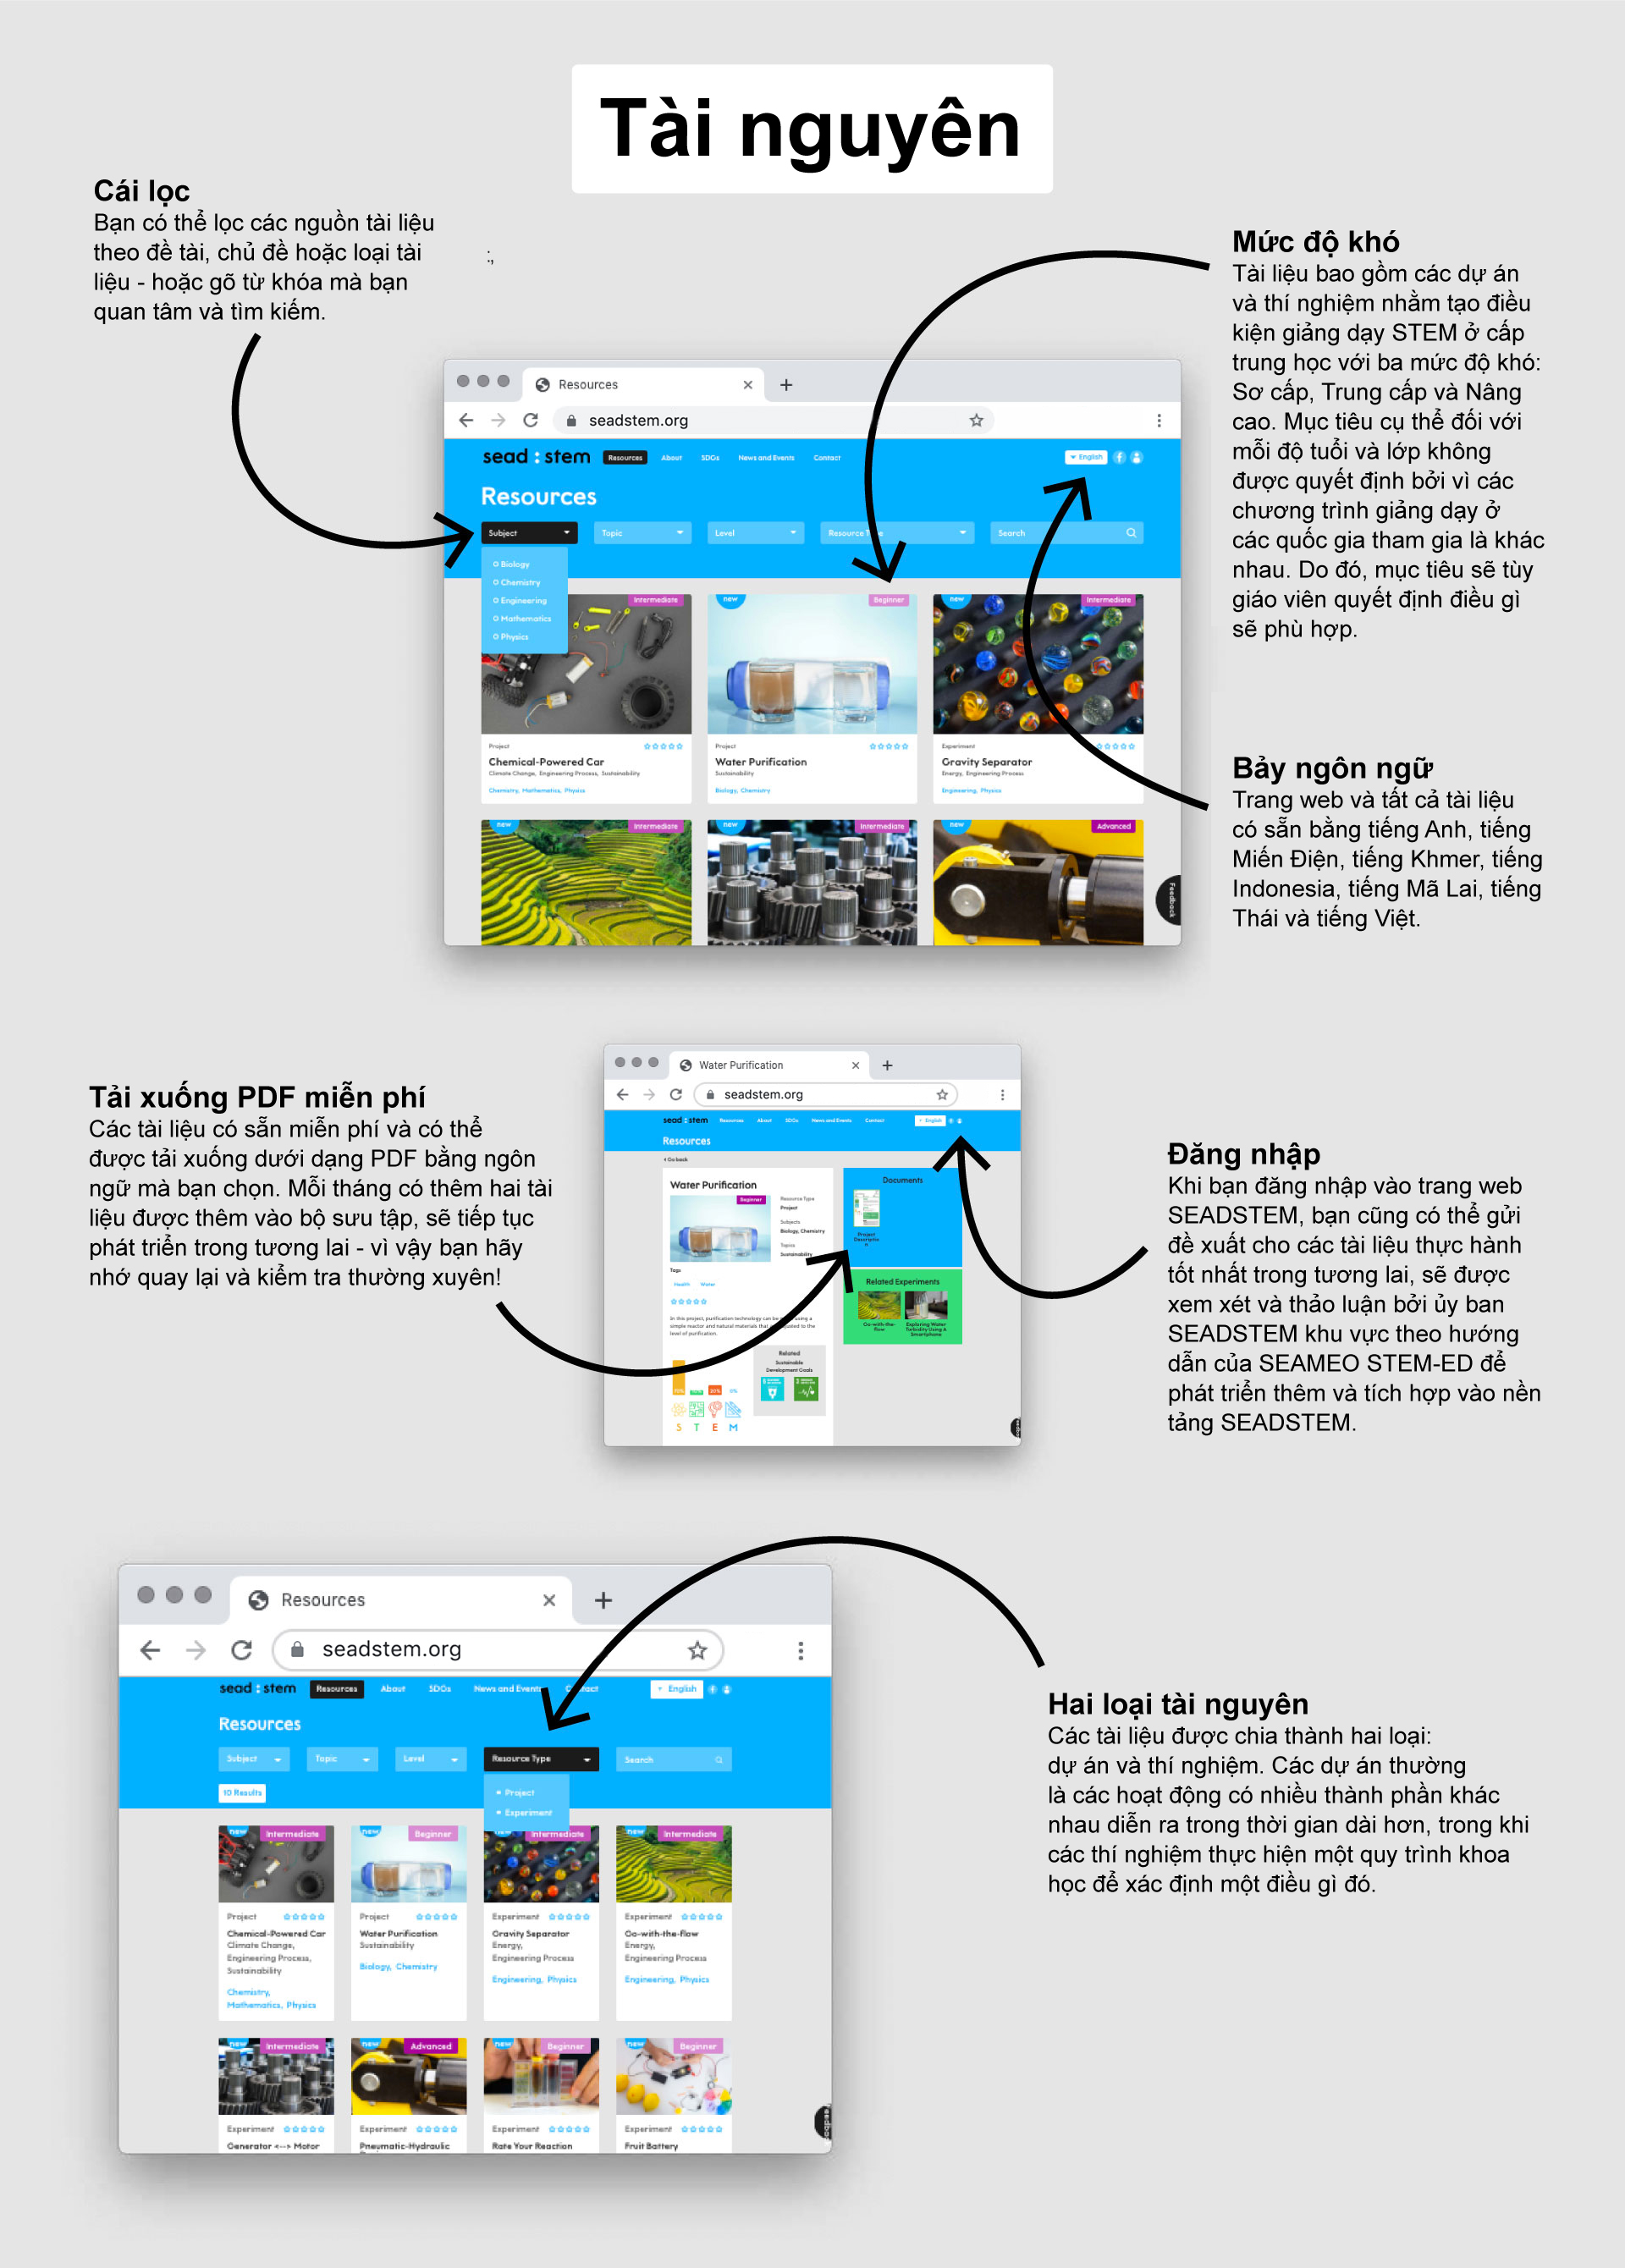 How-to-Use-the-Website-Graphic_VI